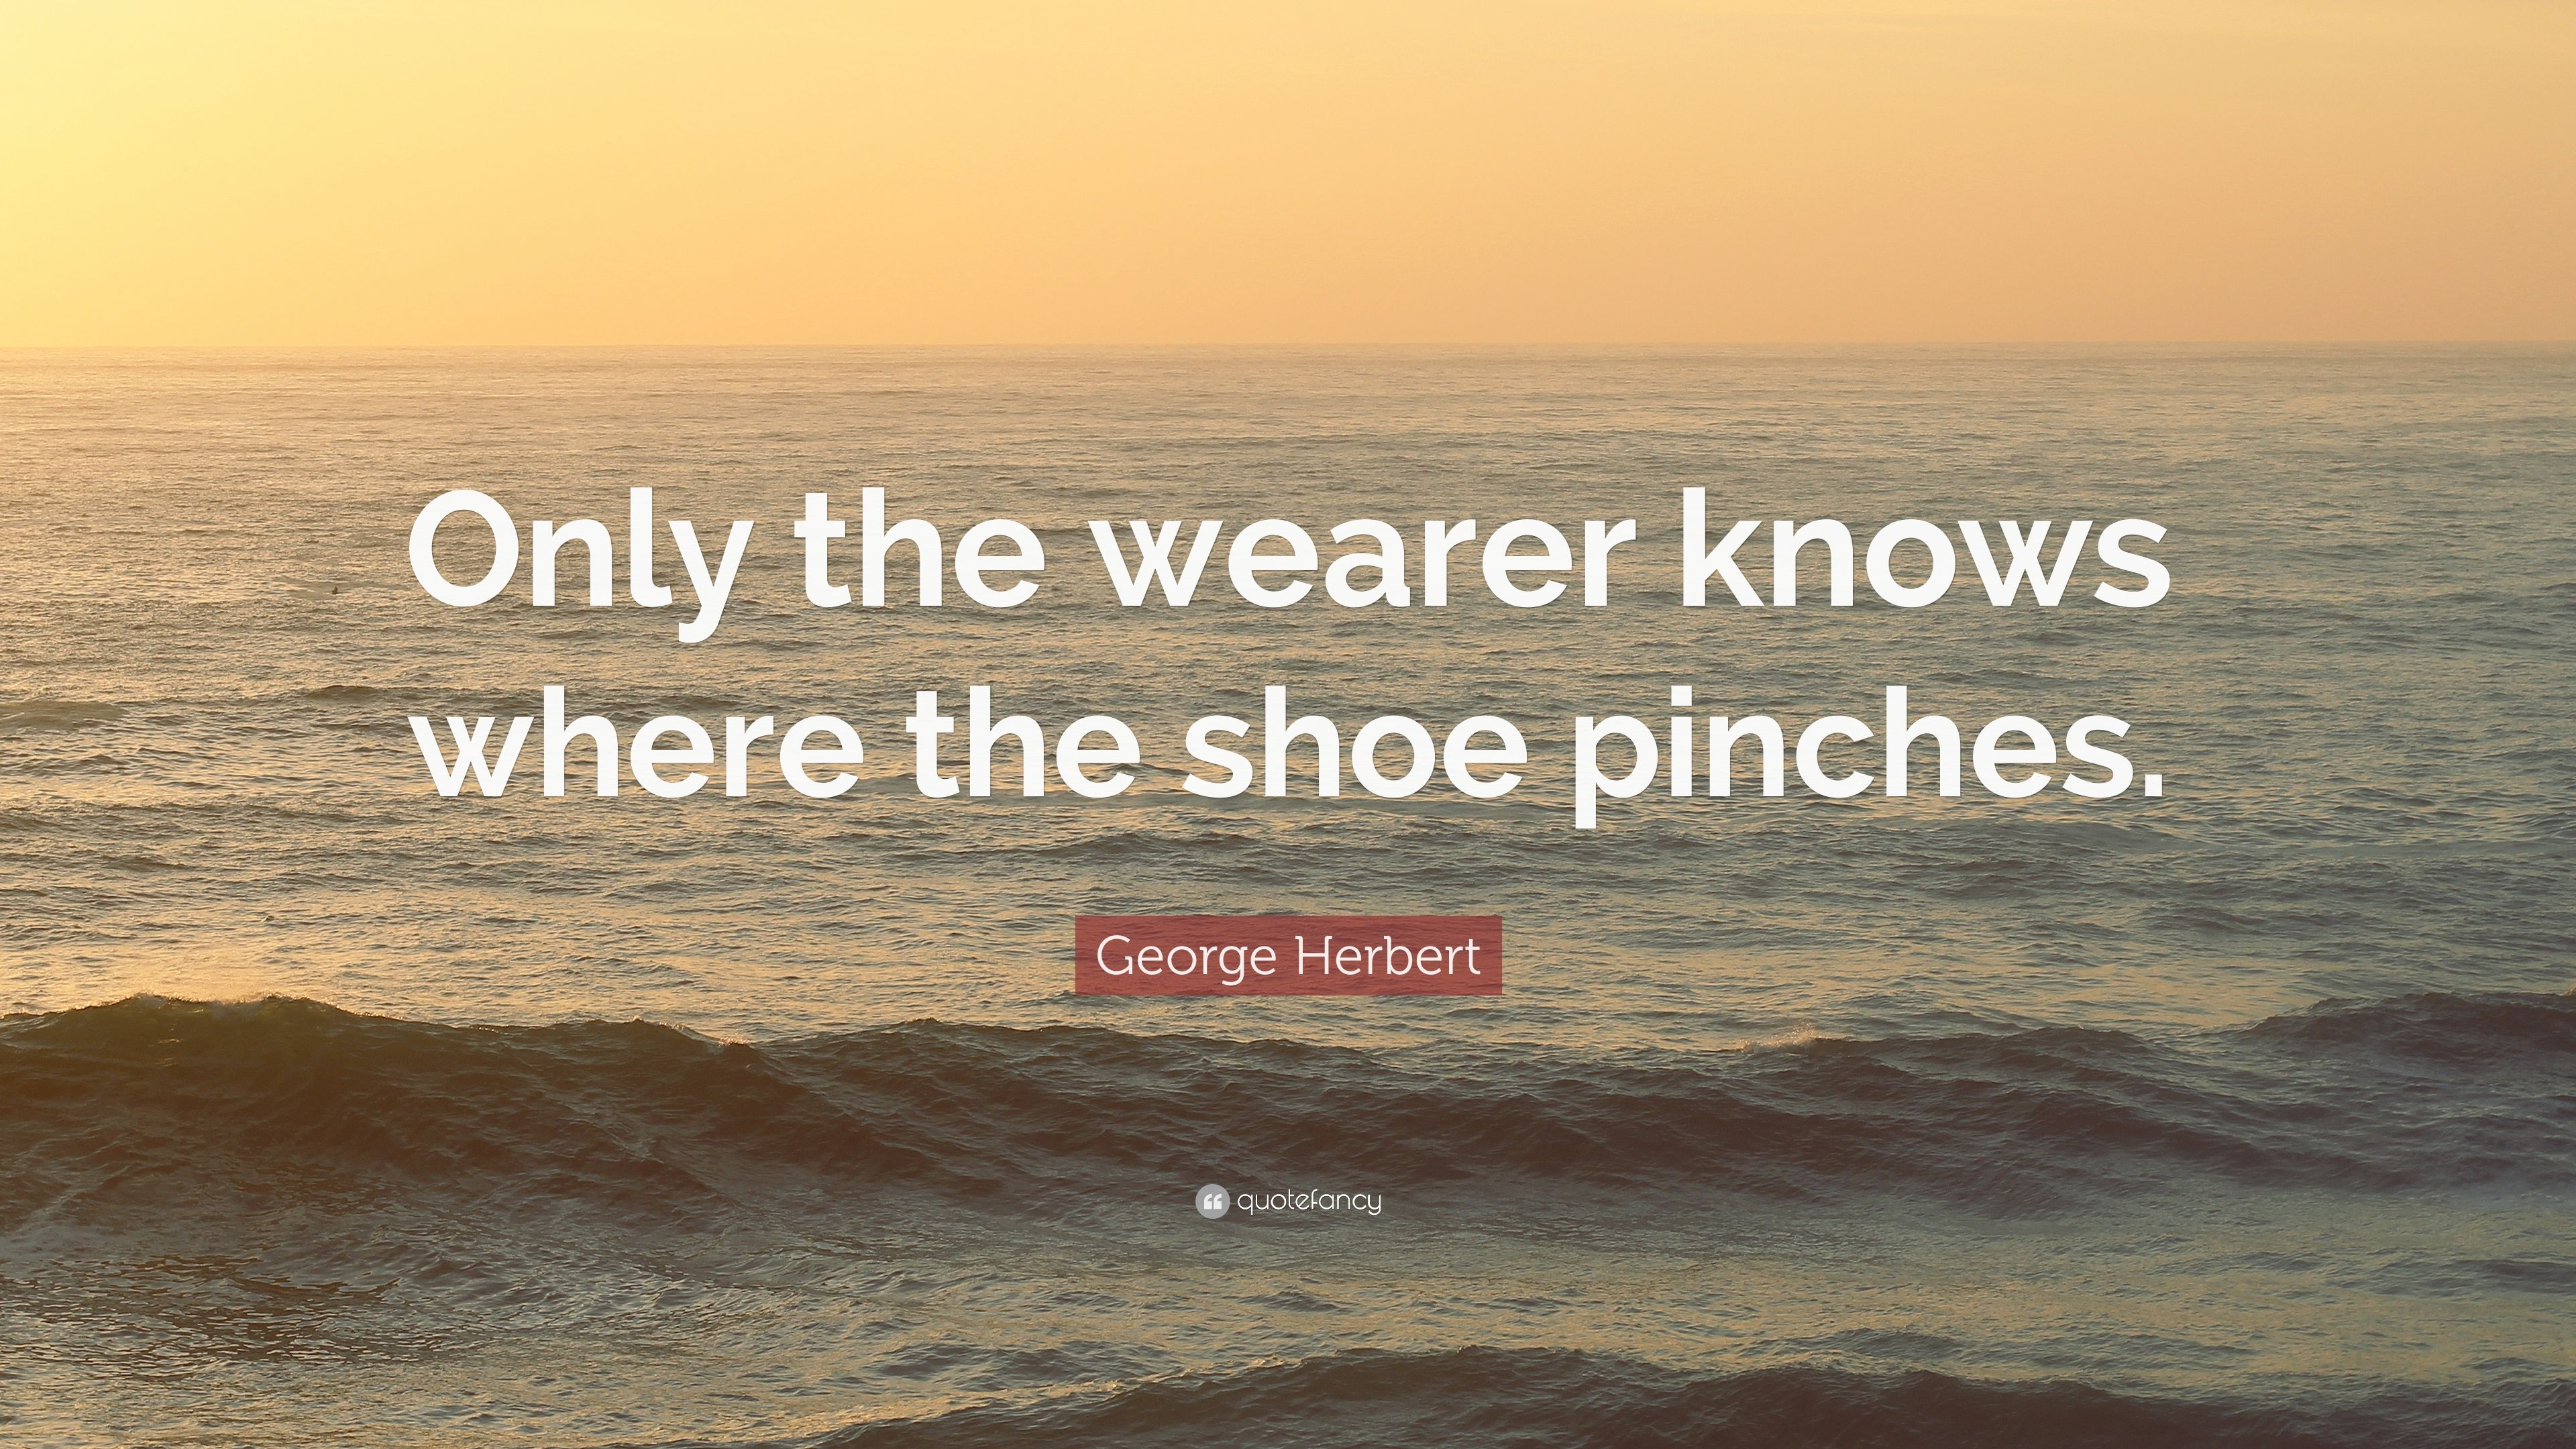 only the wearer knows where the shoe pinches elucidate the statement